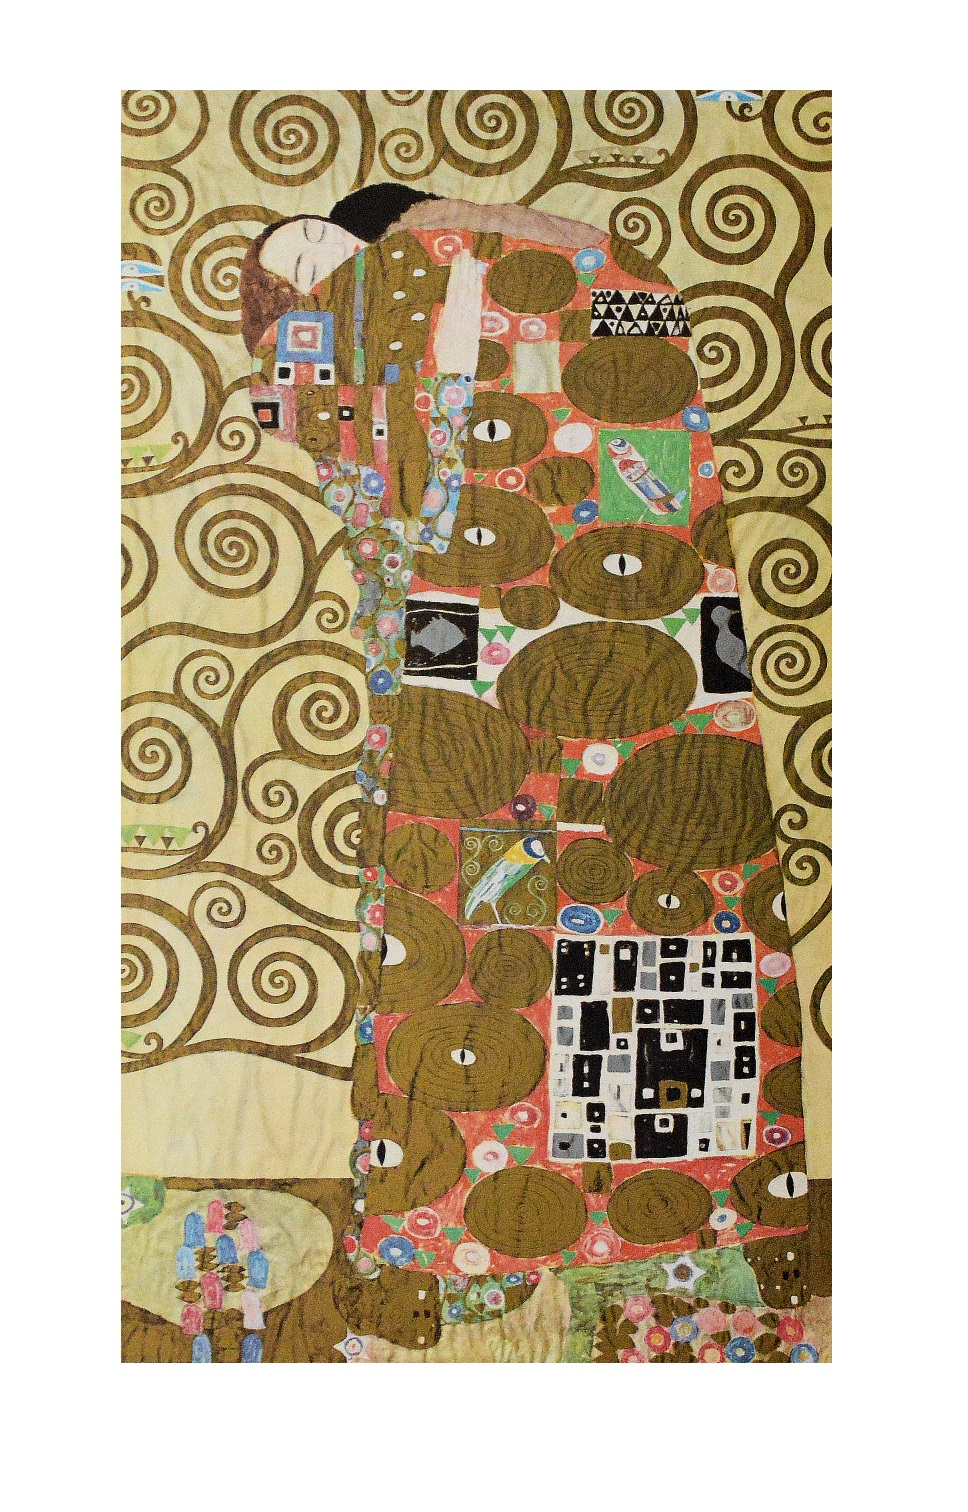 gustav klimt die erf llung poster kunstdruck bild 76x47cm ebay. Black Bedroom Furniture Sets. Home Design Ideas